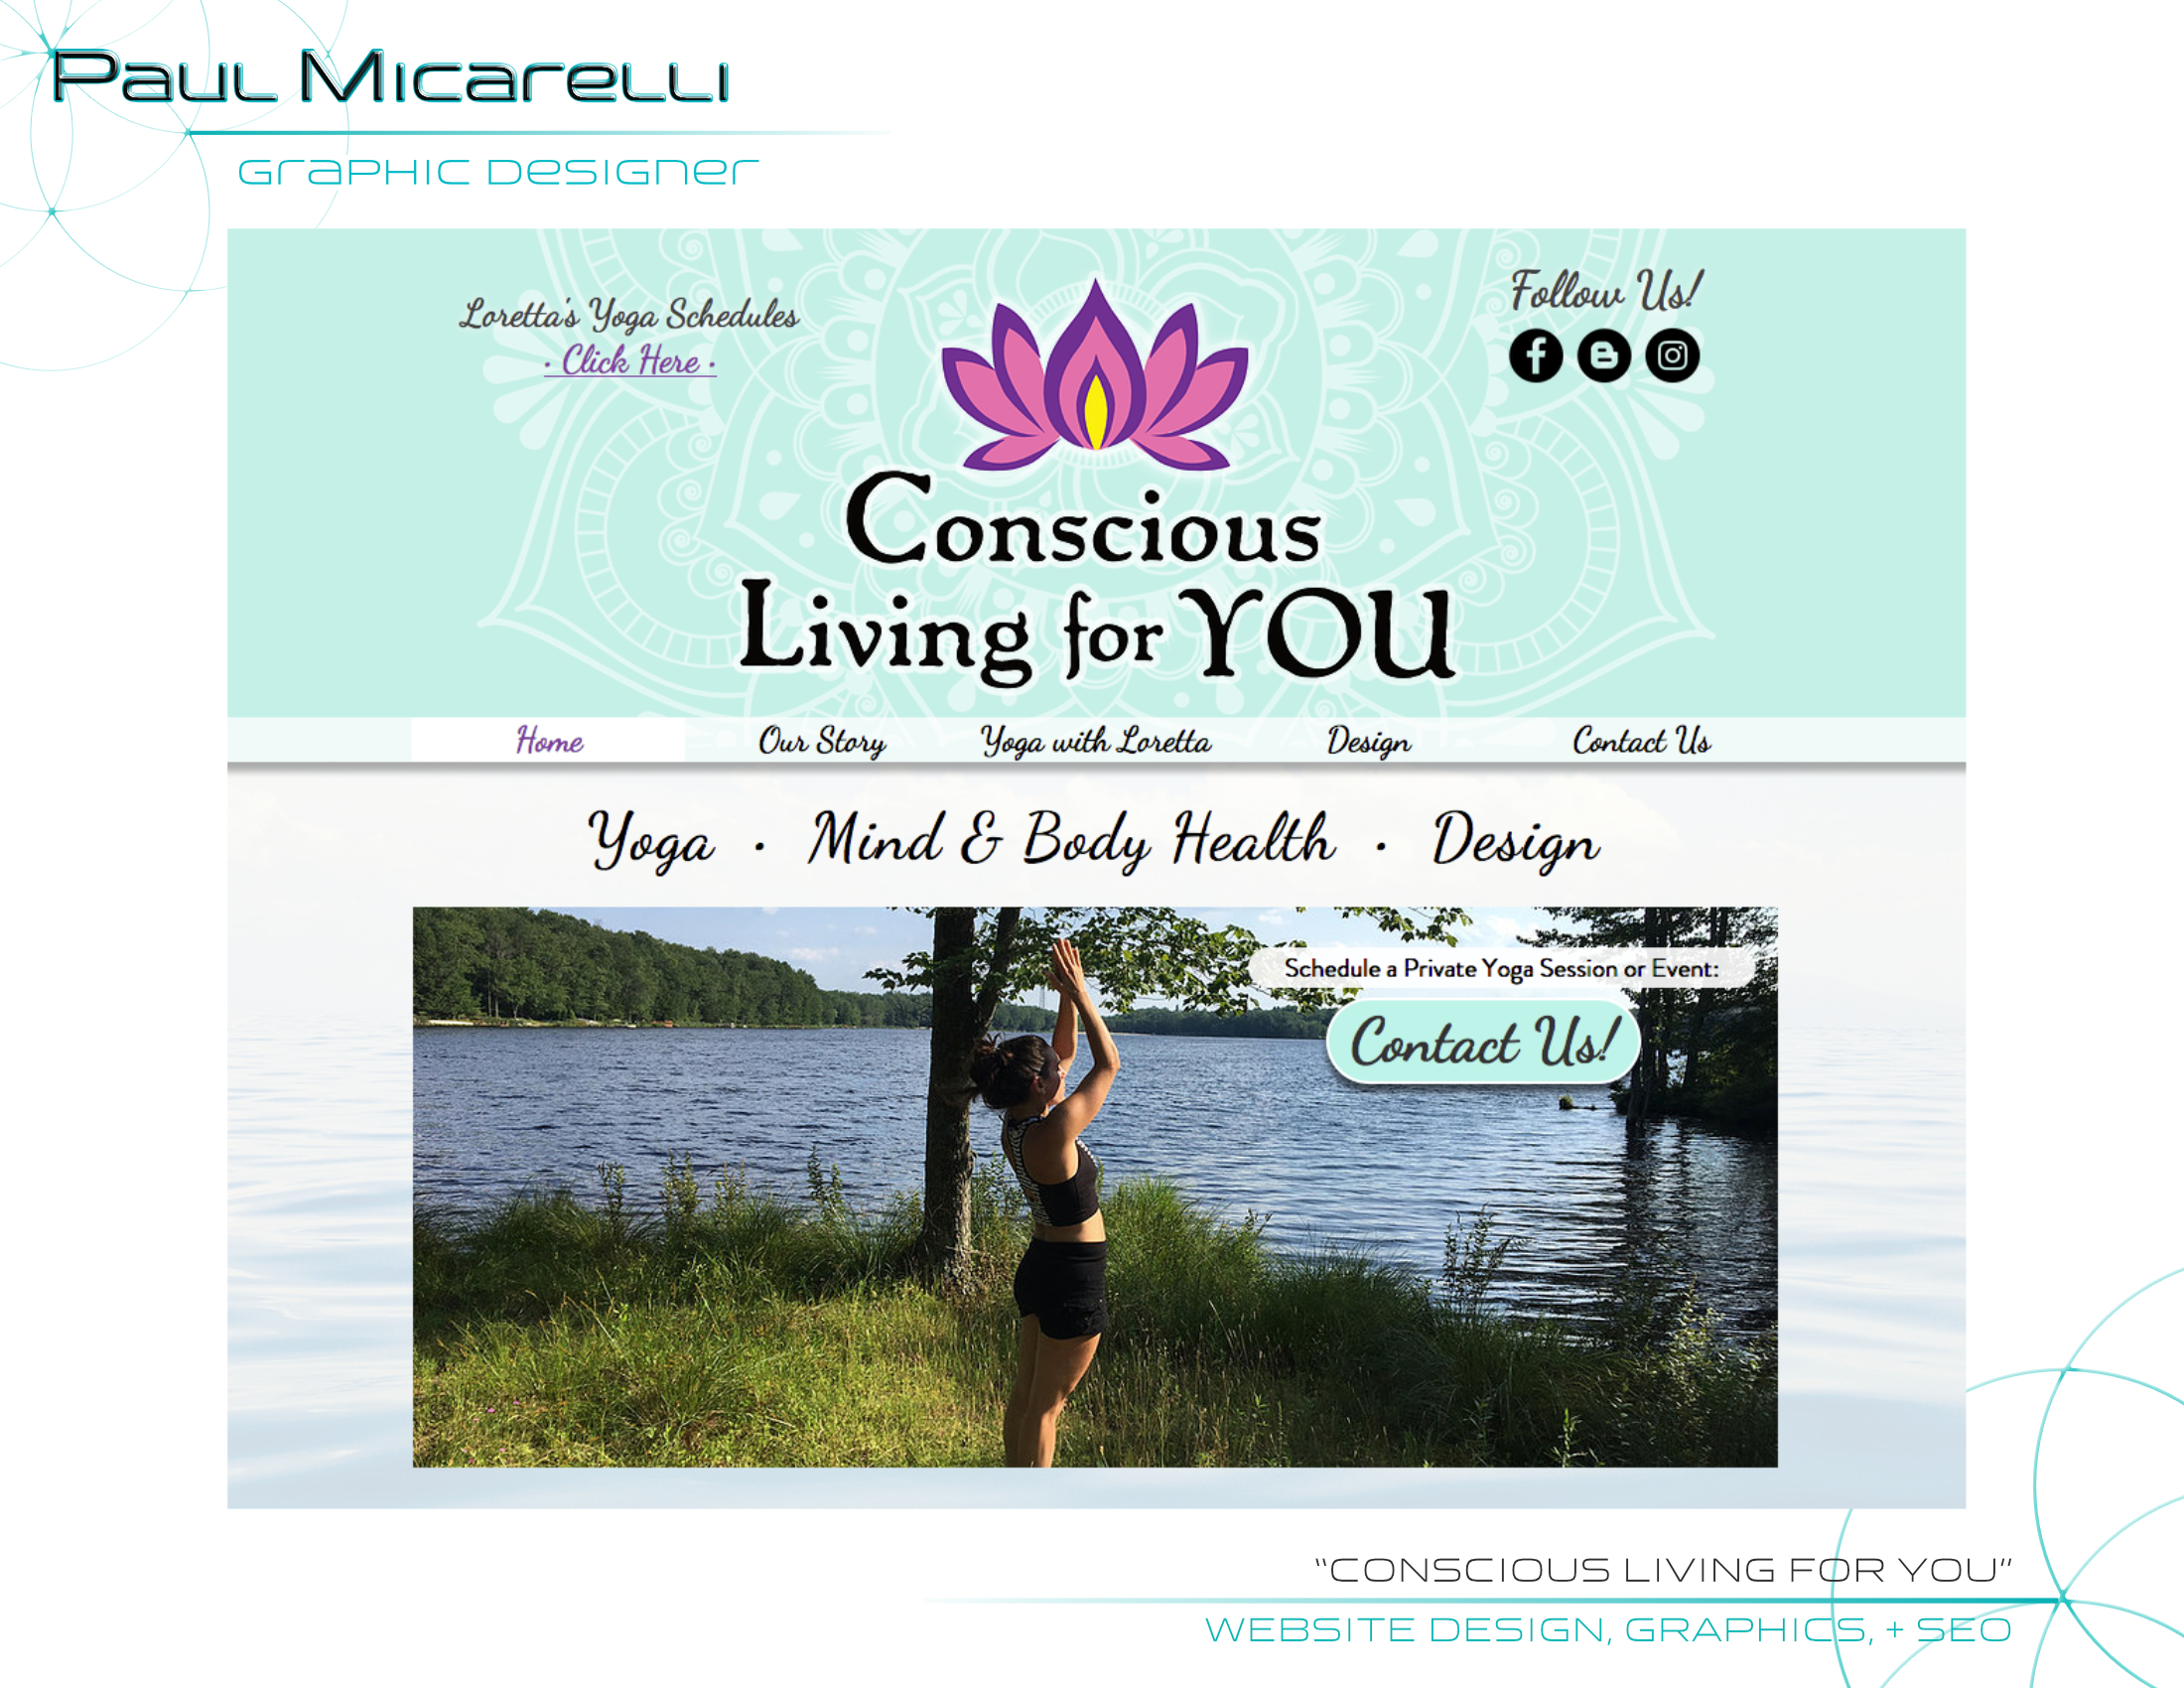 Paul-Micarelli-Conscious Living for You-